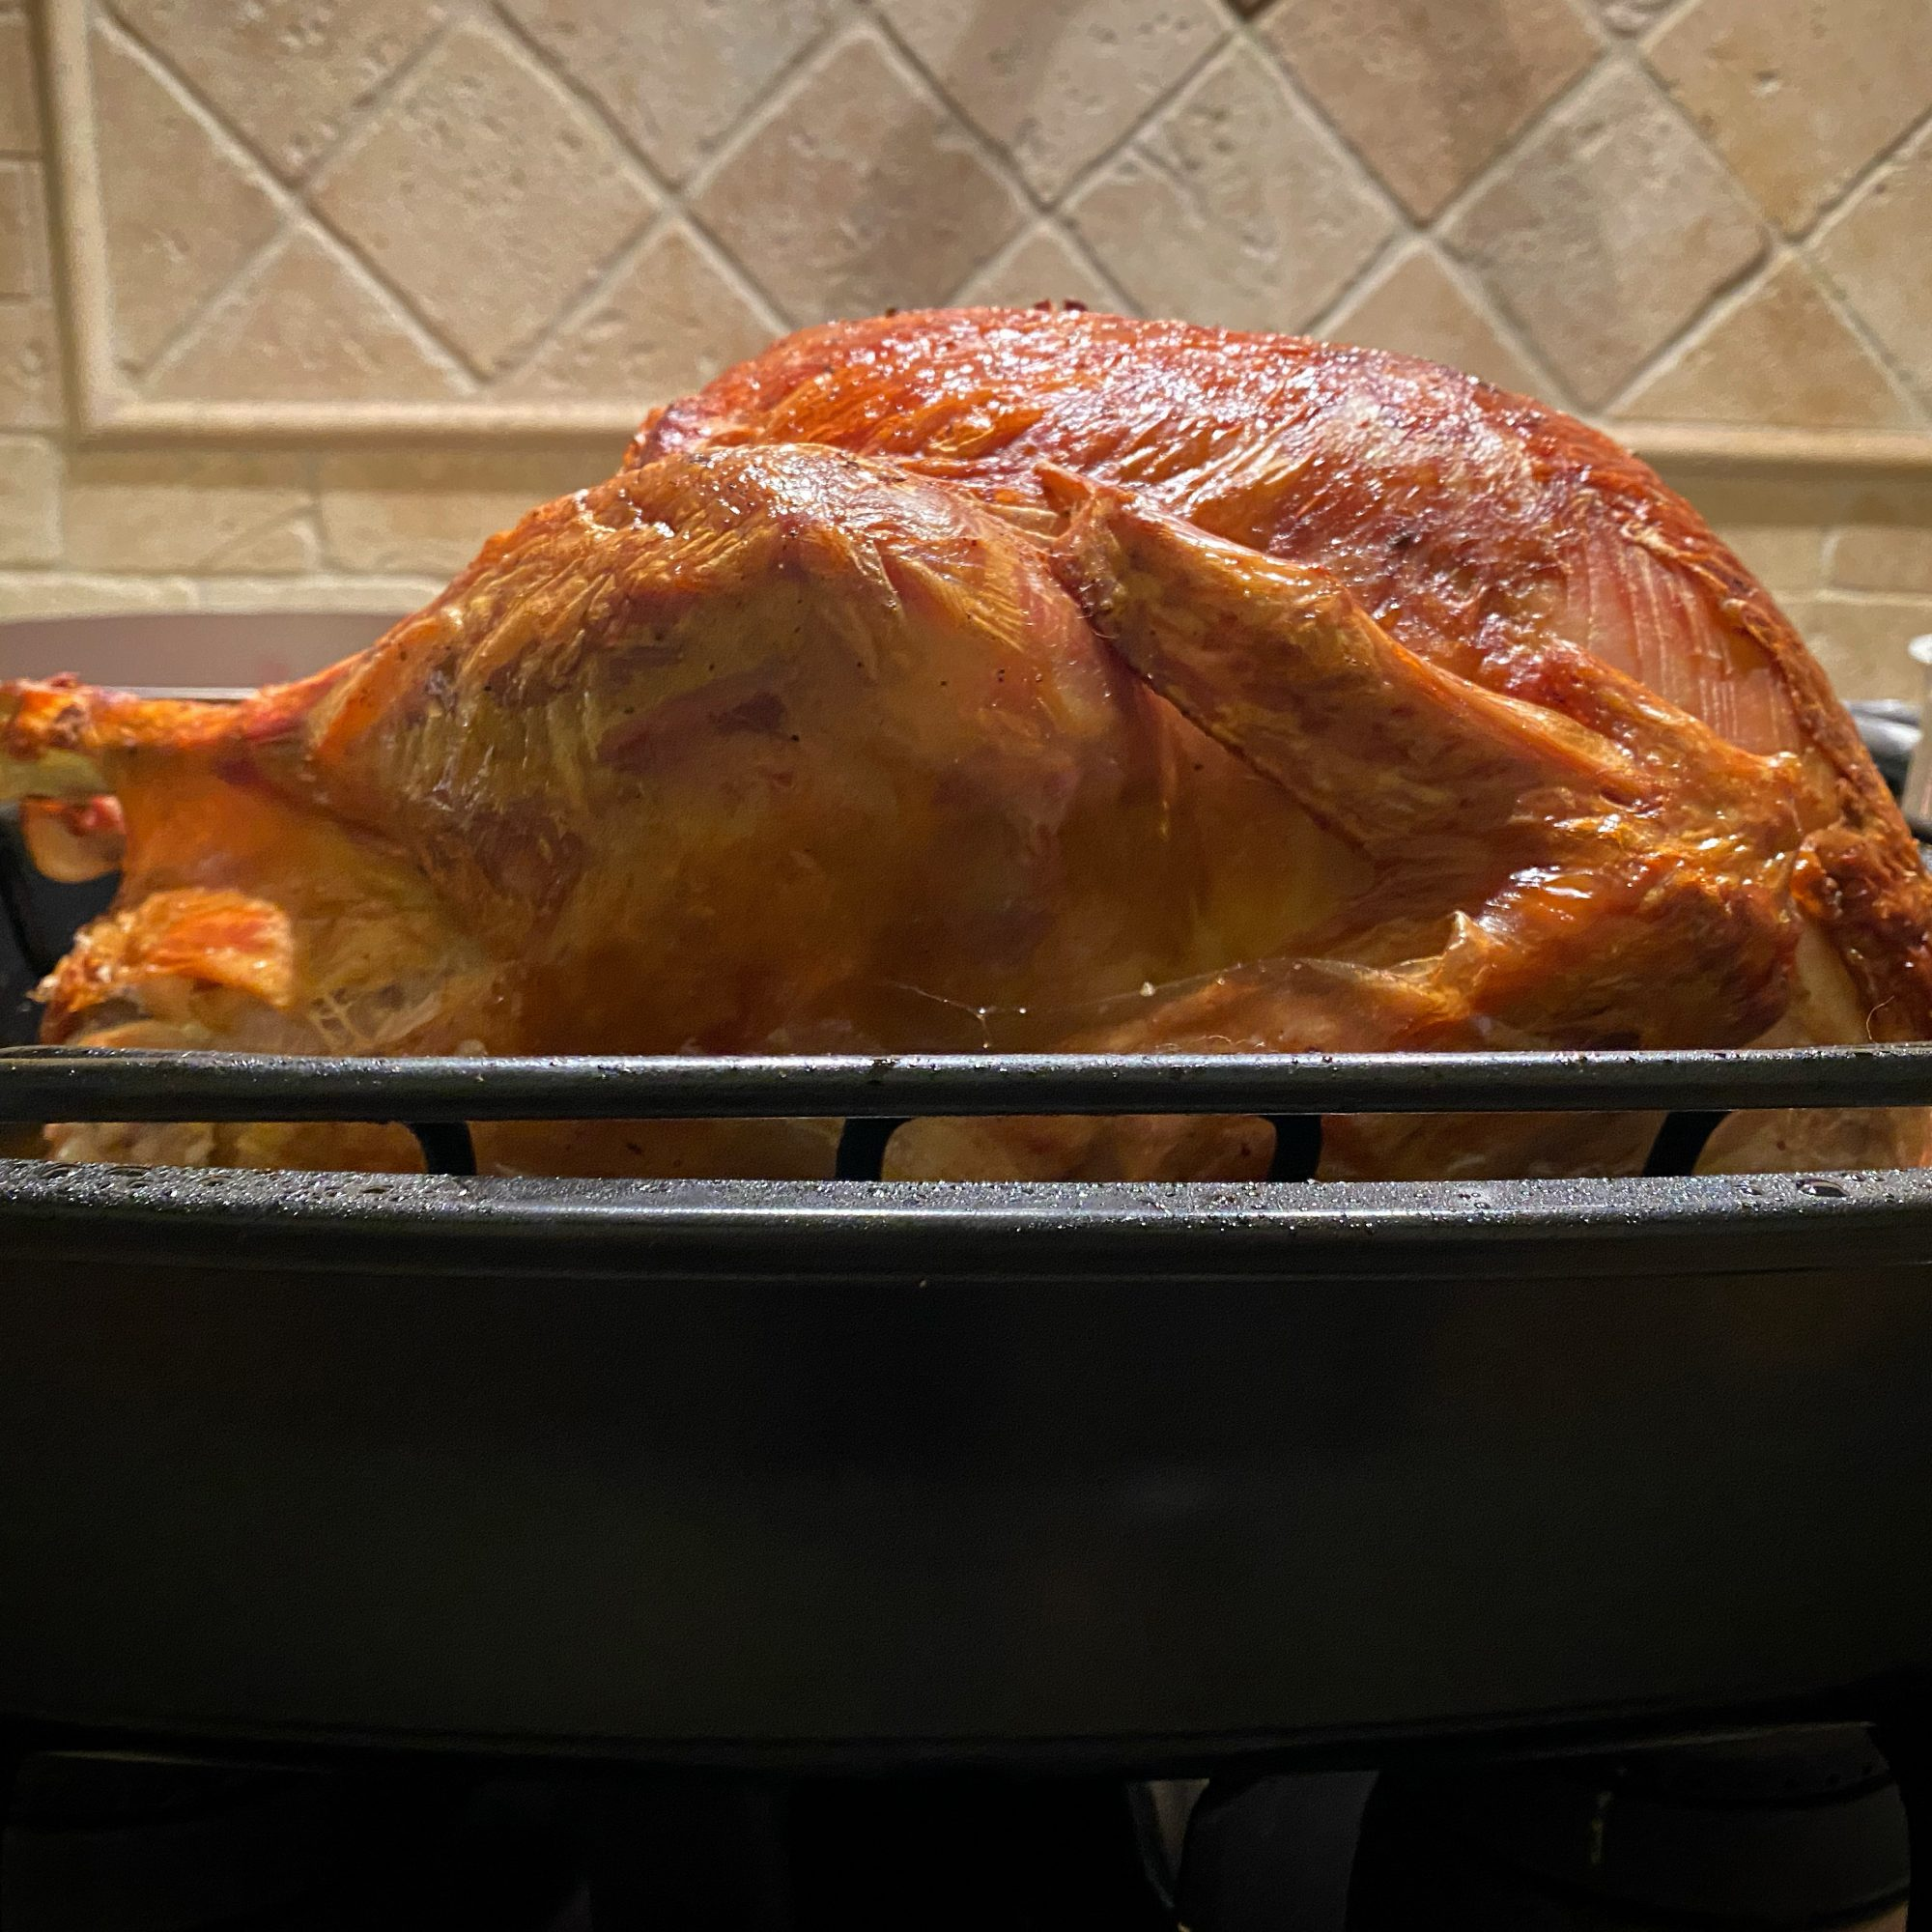 side view of a golden-brown turkey in a roasting pan